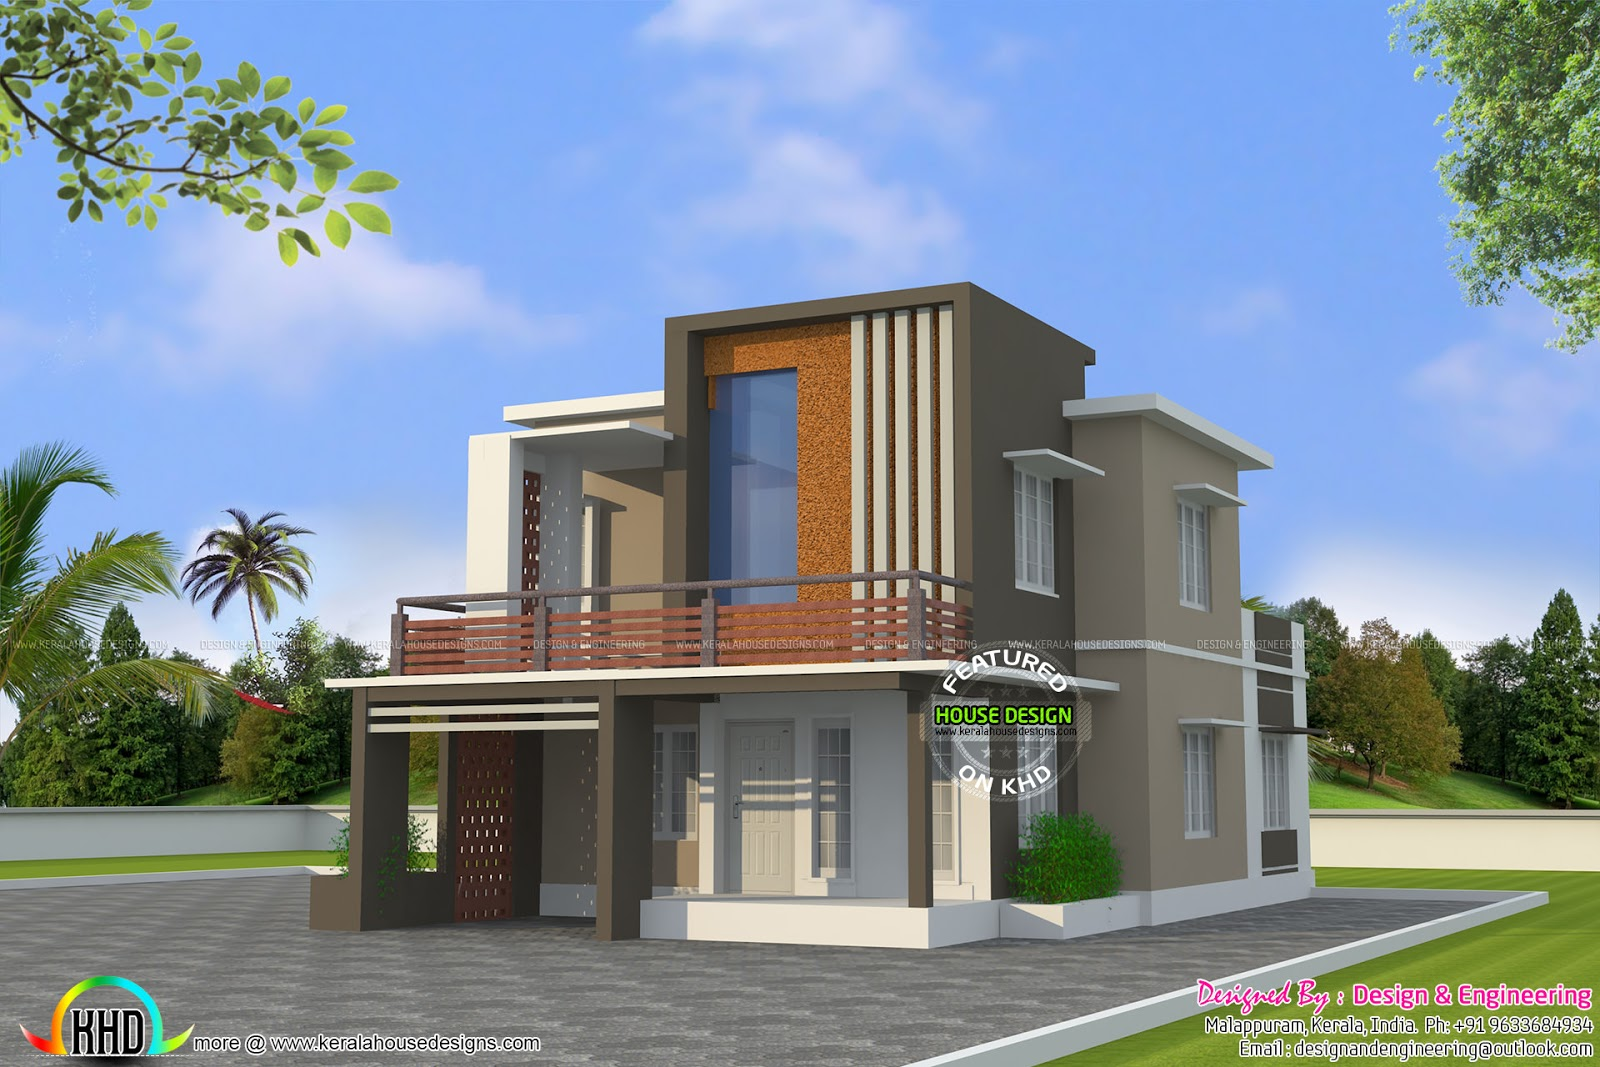 Double storey house budget in the philippines joy studio for Budget home designs philippines